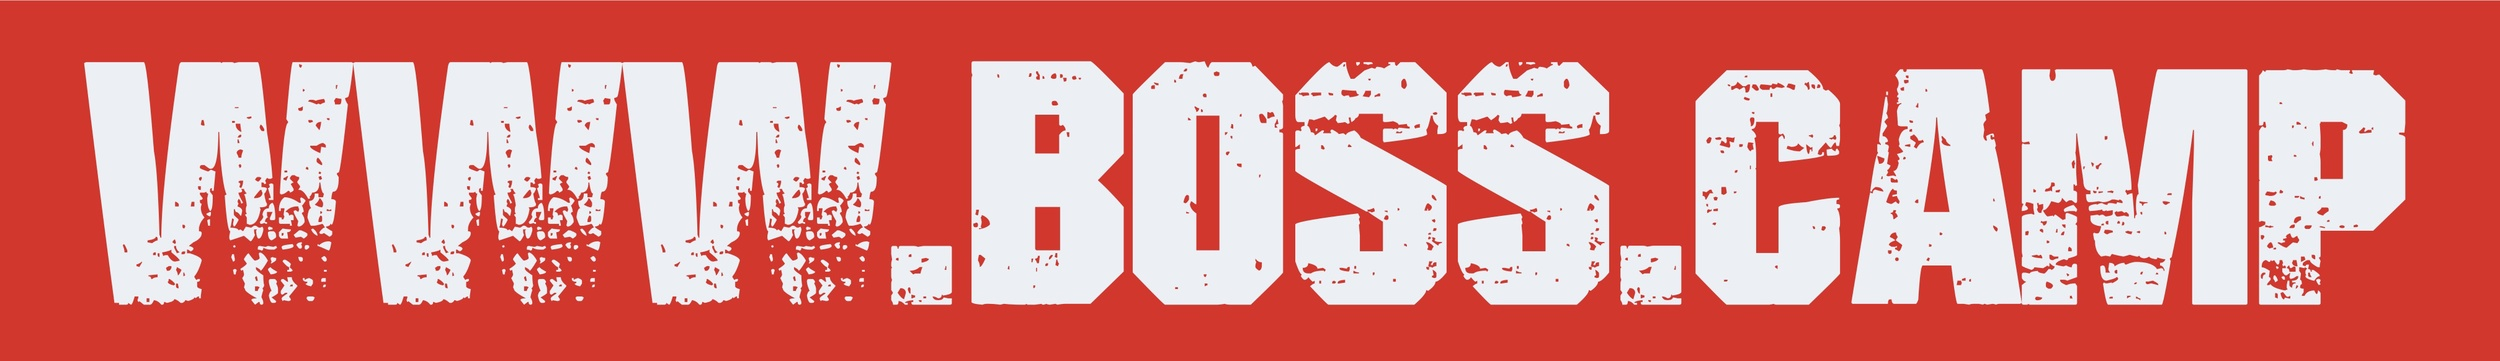 Get better employee performance with proven management techniques at www.boss.camp Jpeg